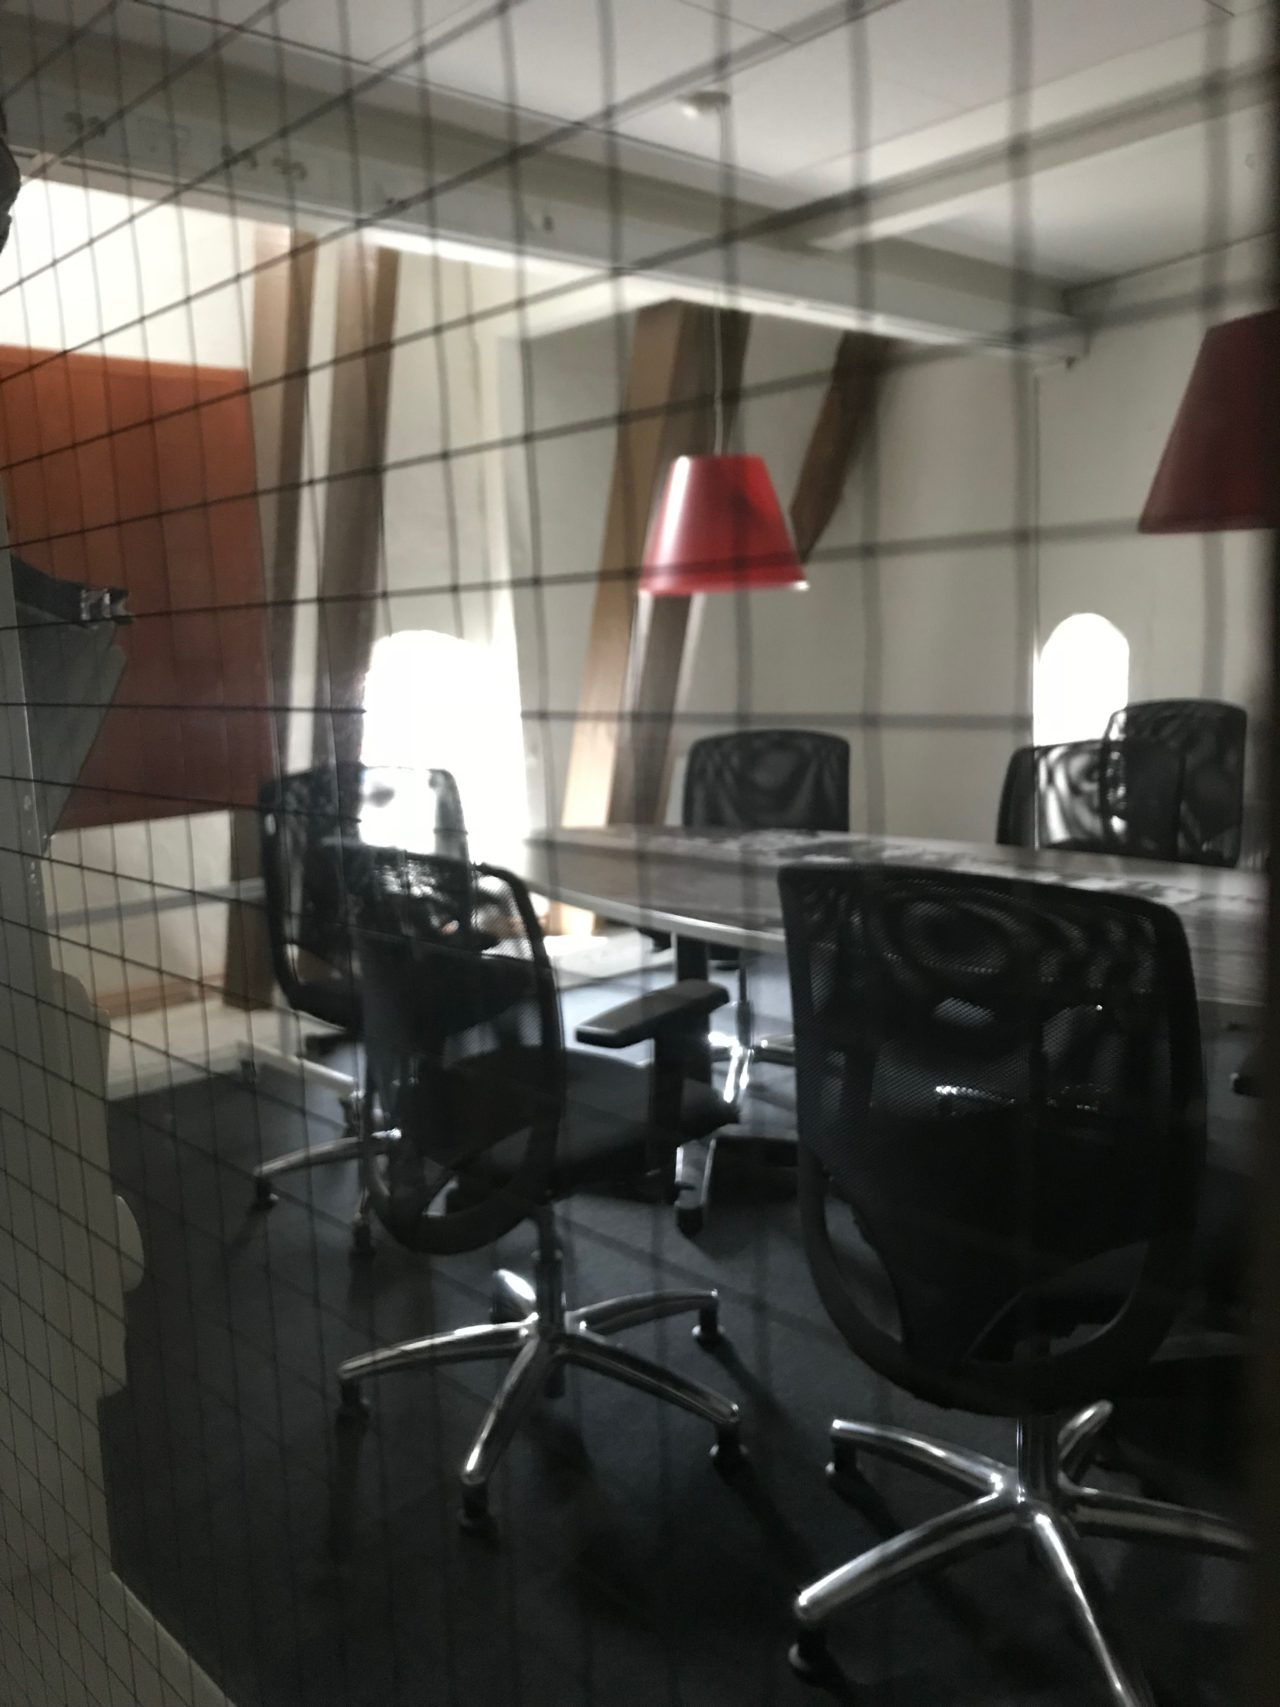 Locked Private Conference Room With Table And Chairs